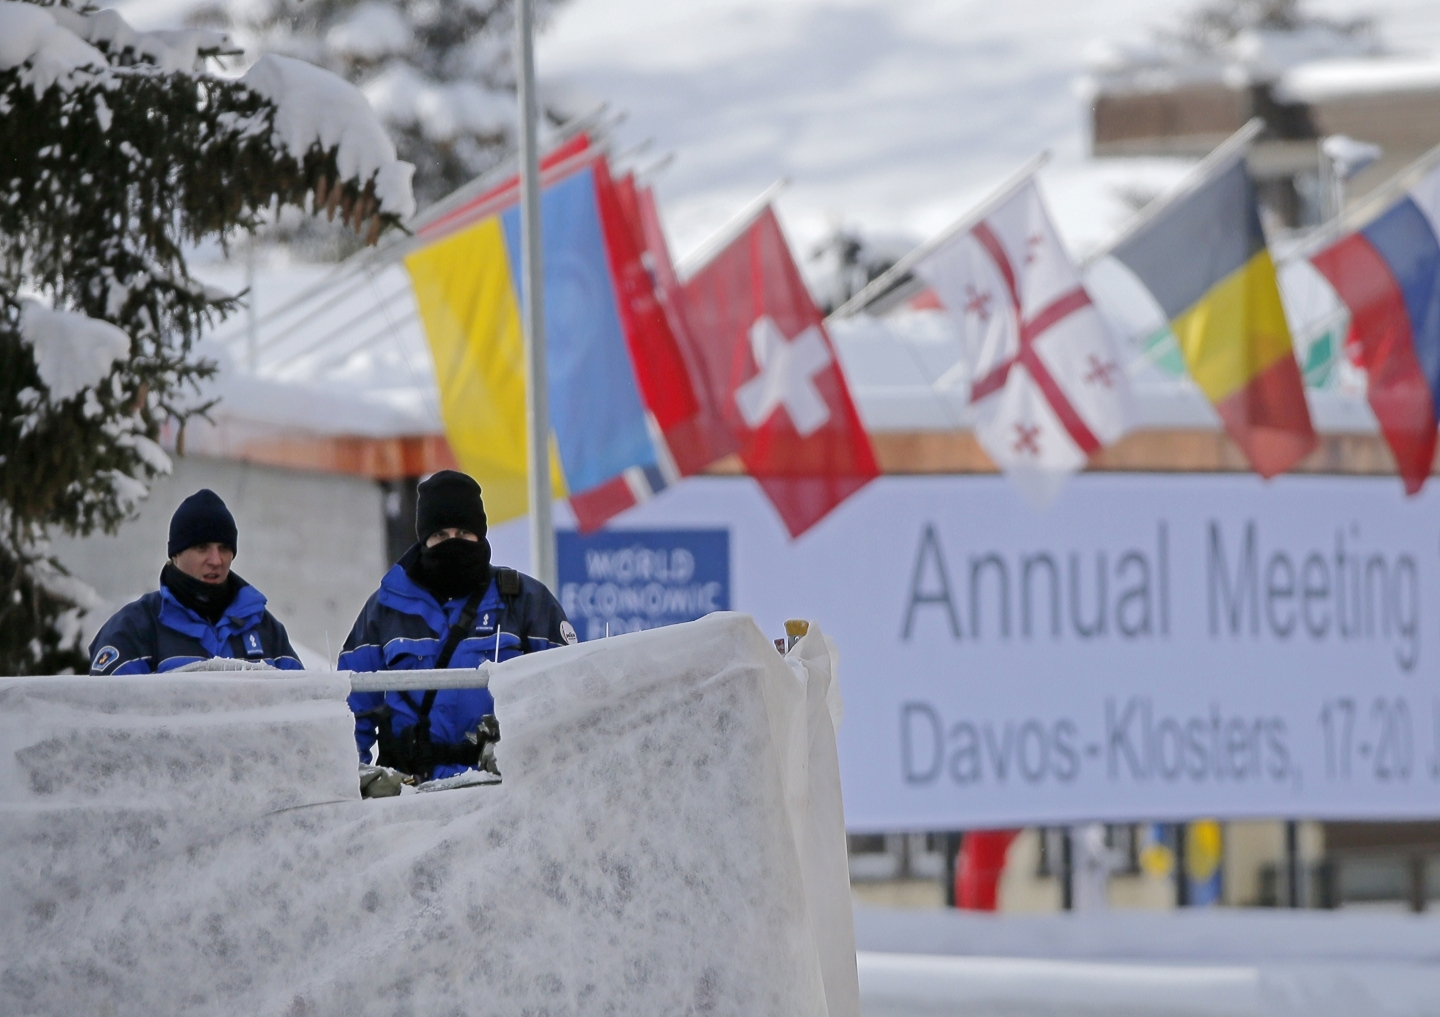 Swiss police officers guard the entrance to the World Economic Forum in Davos, Switzerland (AP Photo/Michel Euler)